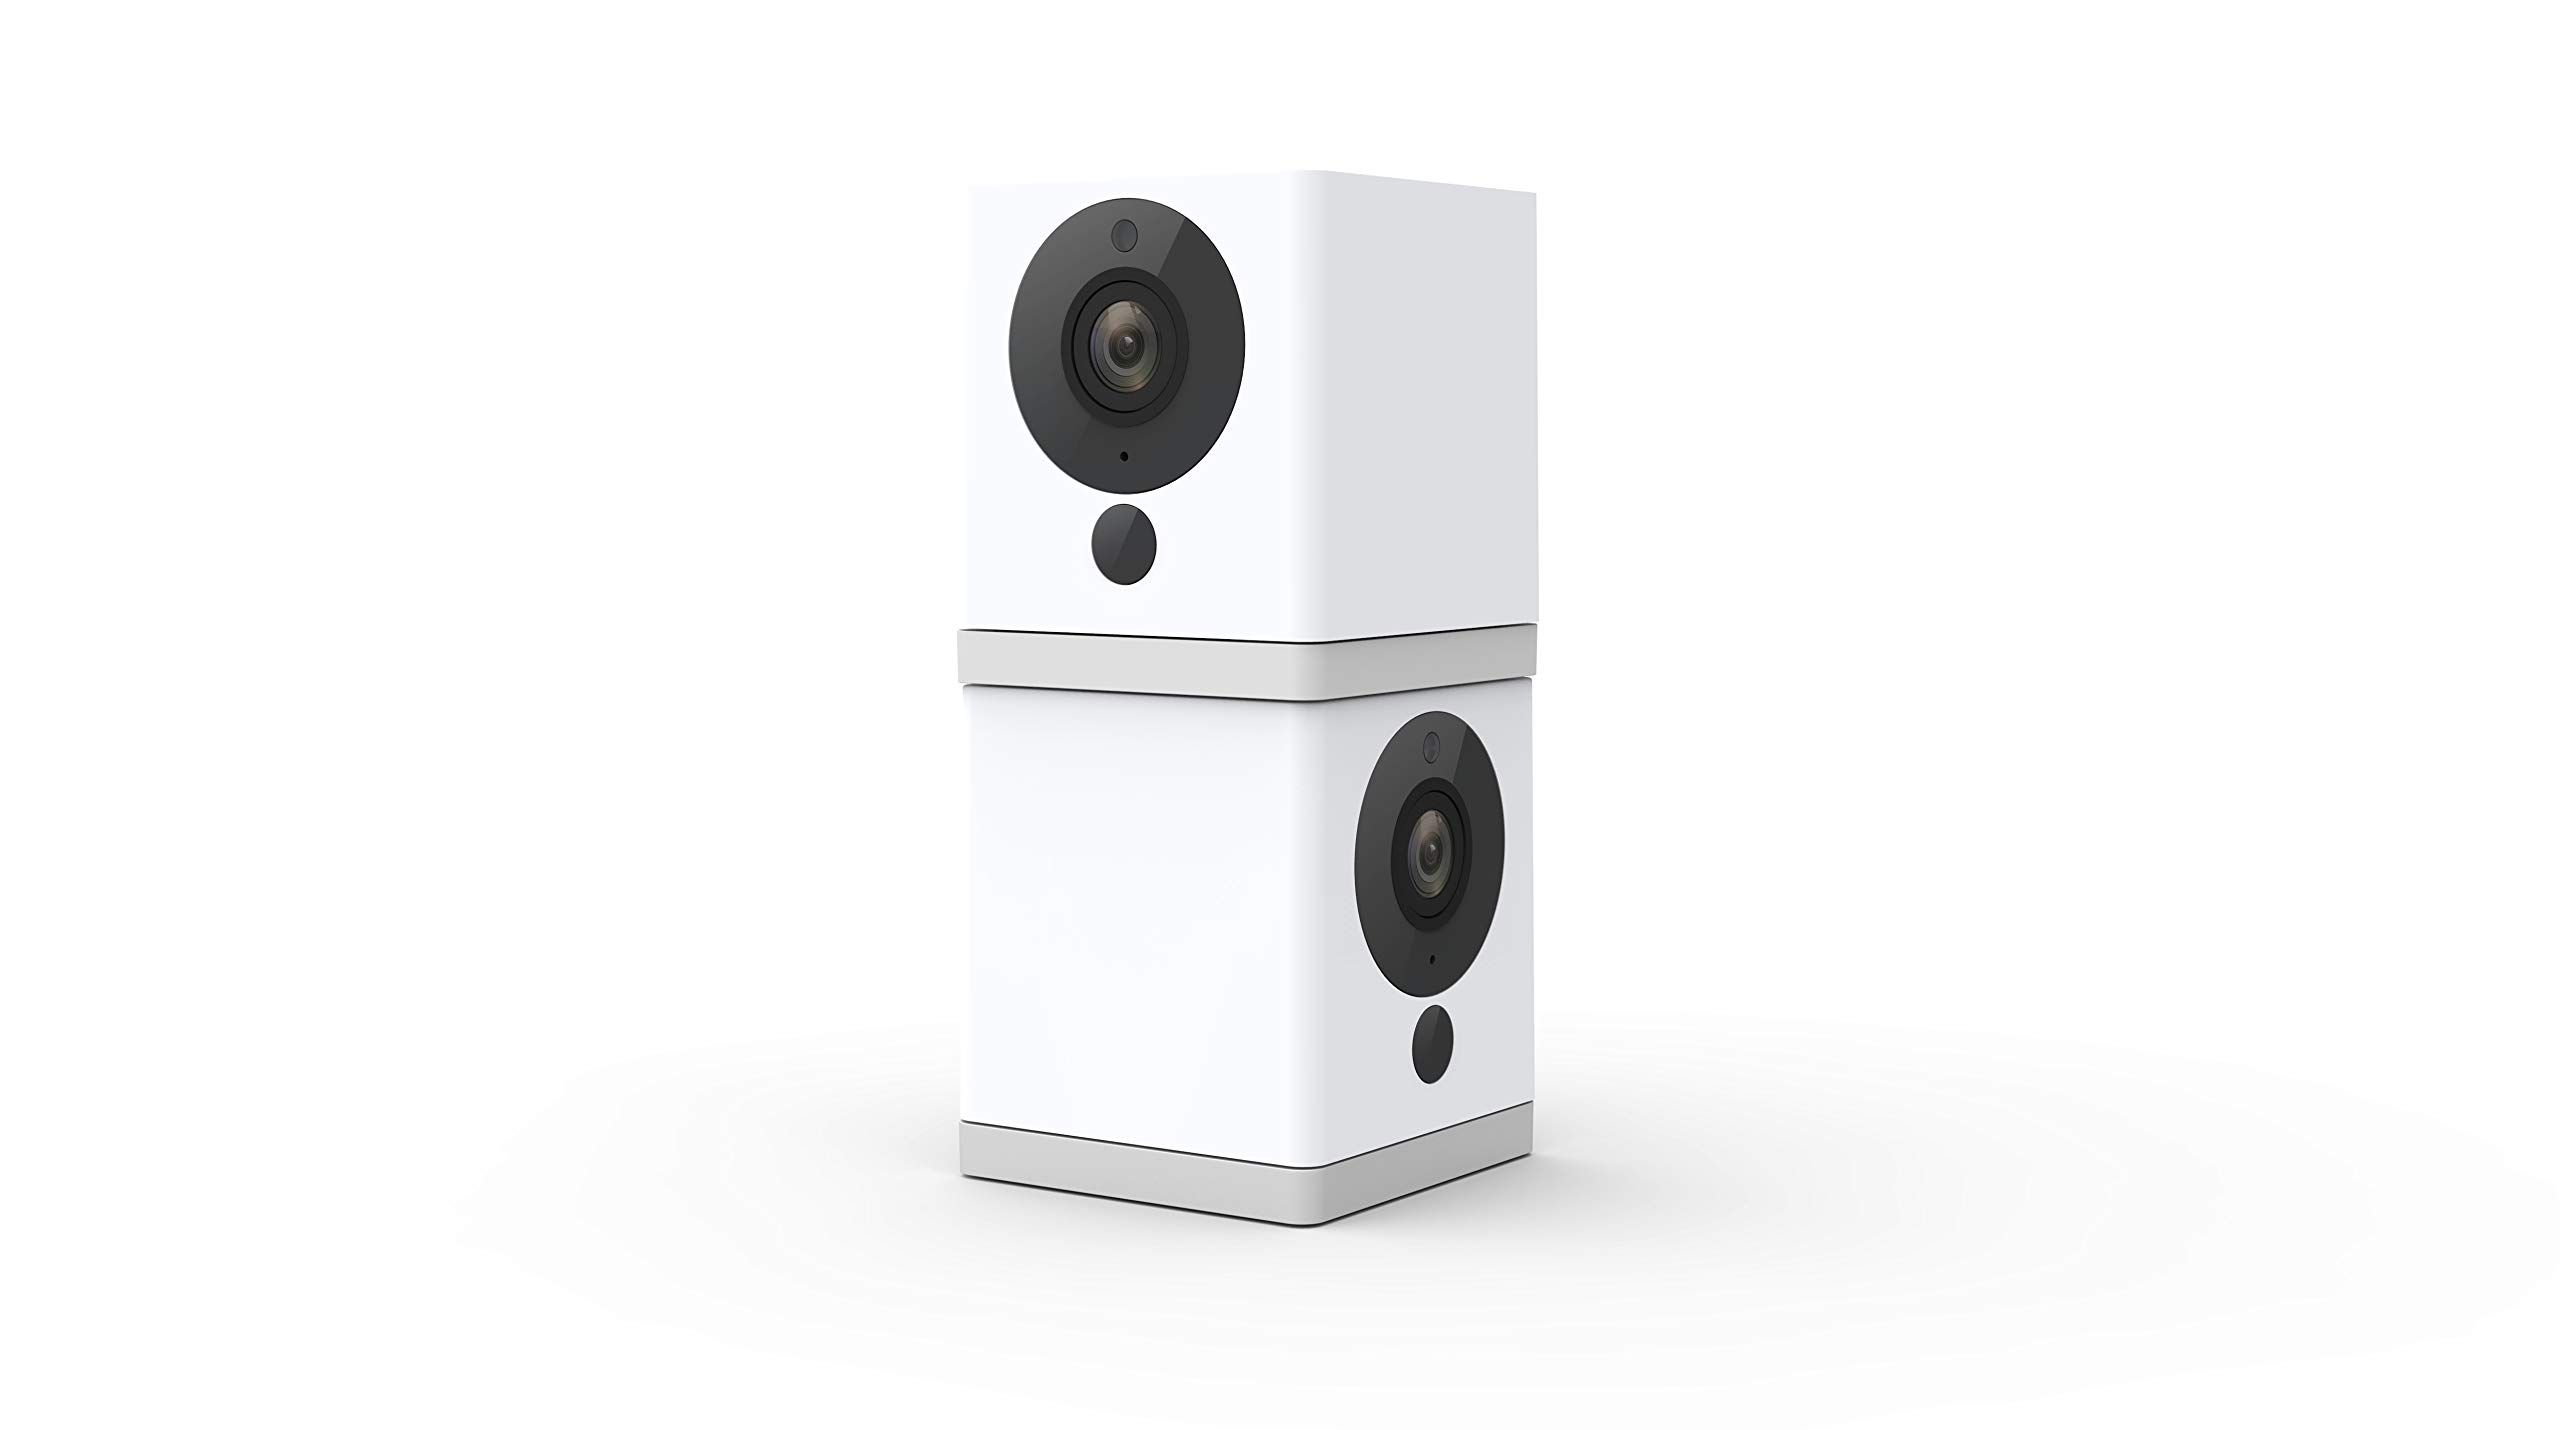 Wyze Cam 1080p Hd Indoor Wireless Smart Home Camera With Night Vision 2 Way Audio Works With Alexa The Google Assistant Pack Of 2 White Wyzec2x2 Amazon Sg Electronics